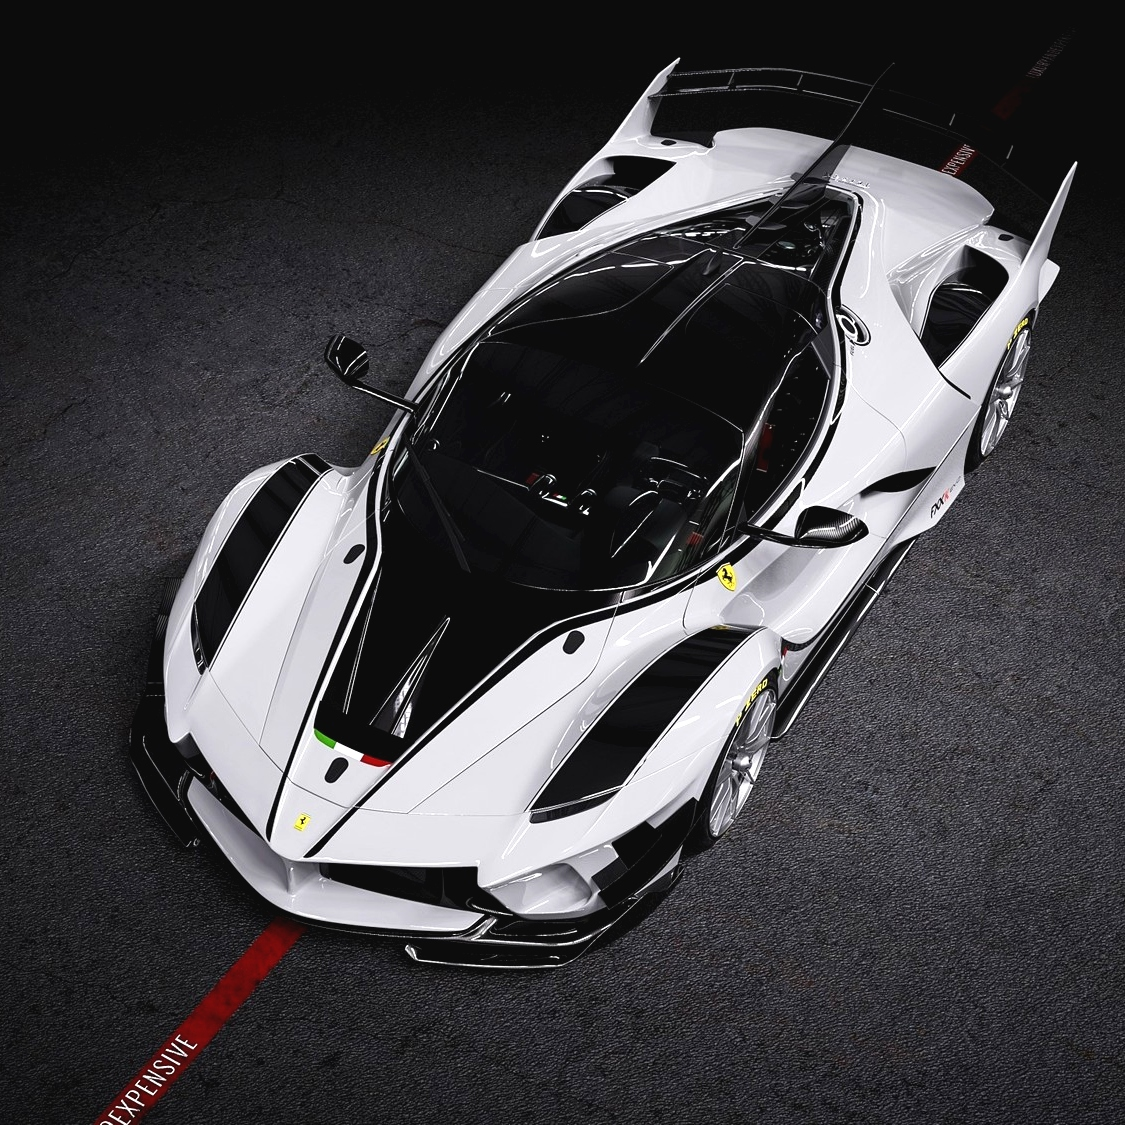 Top 10 Most Expensive Ferrari Cars In The World In 2020